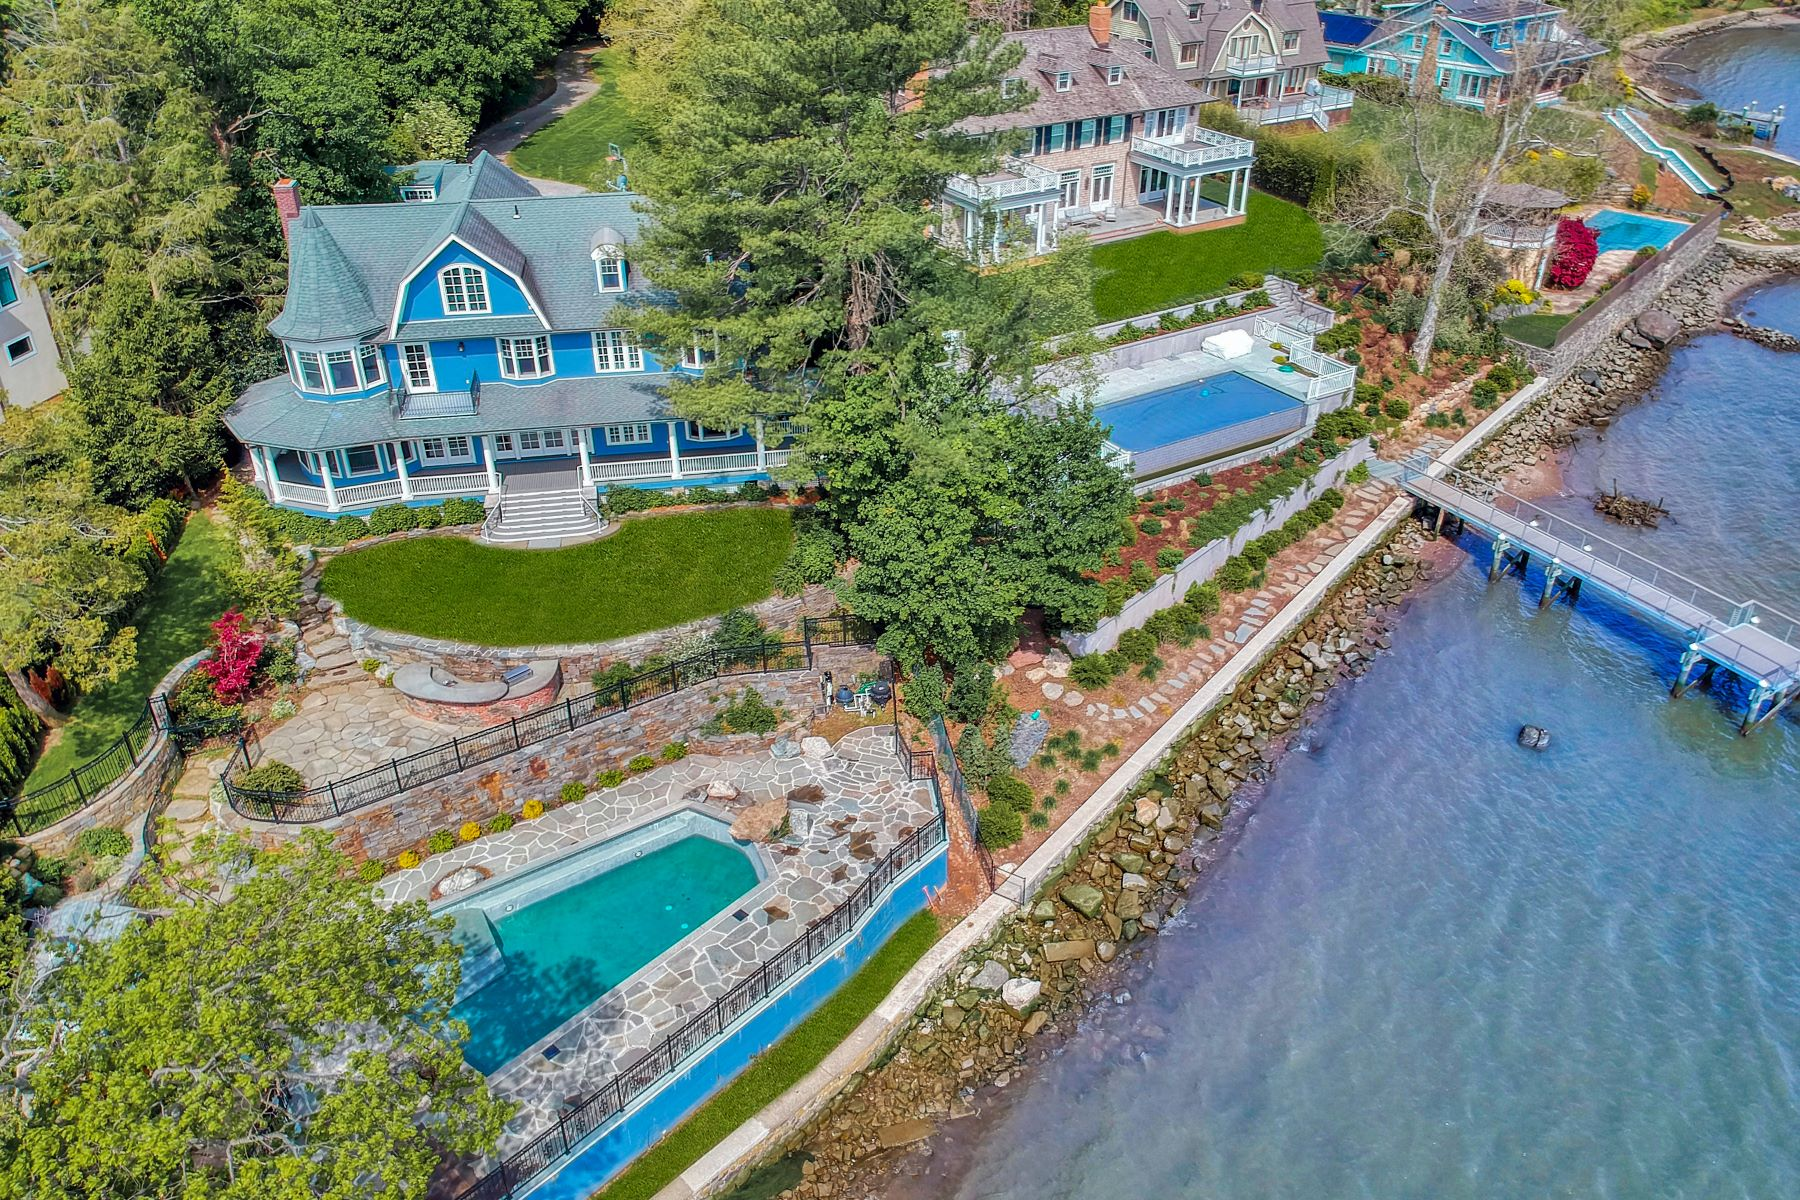 Single Family Homes for Active at River House 6 Voorhis Point South Nyack, New York 10960 United States